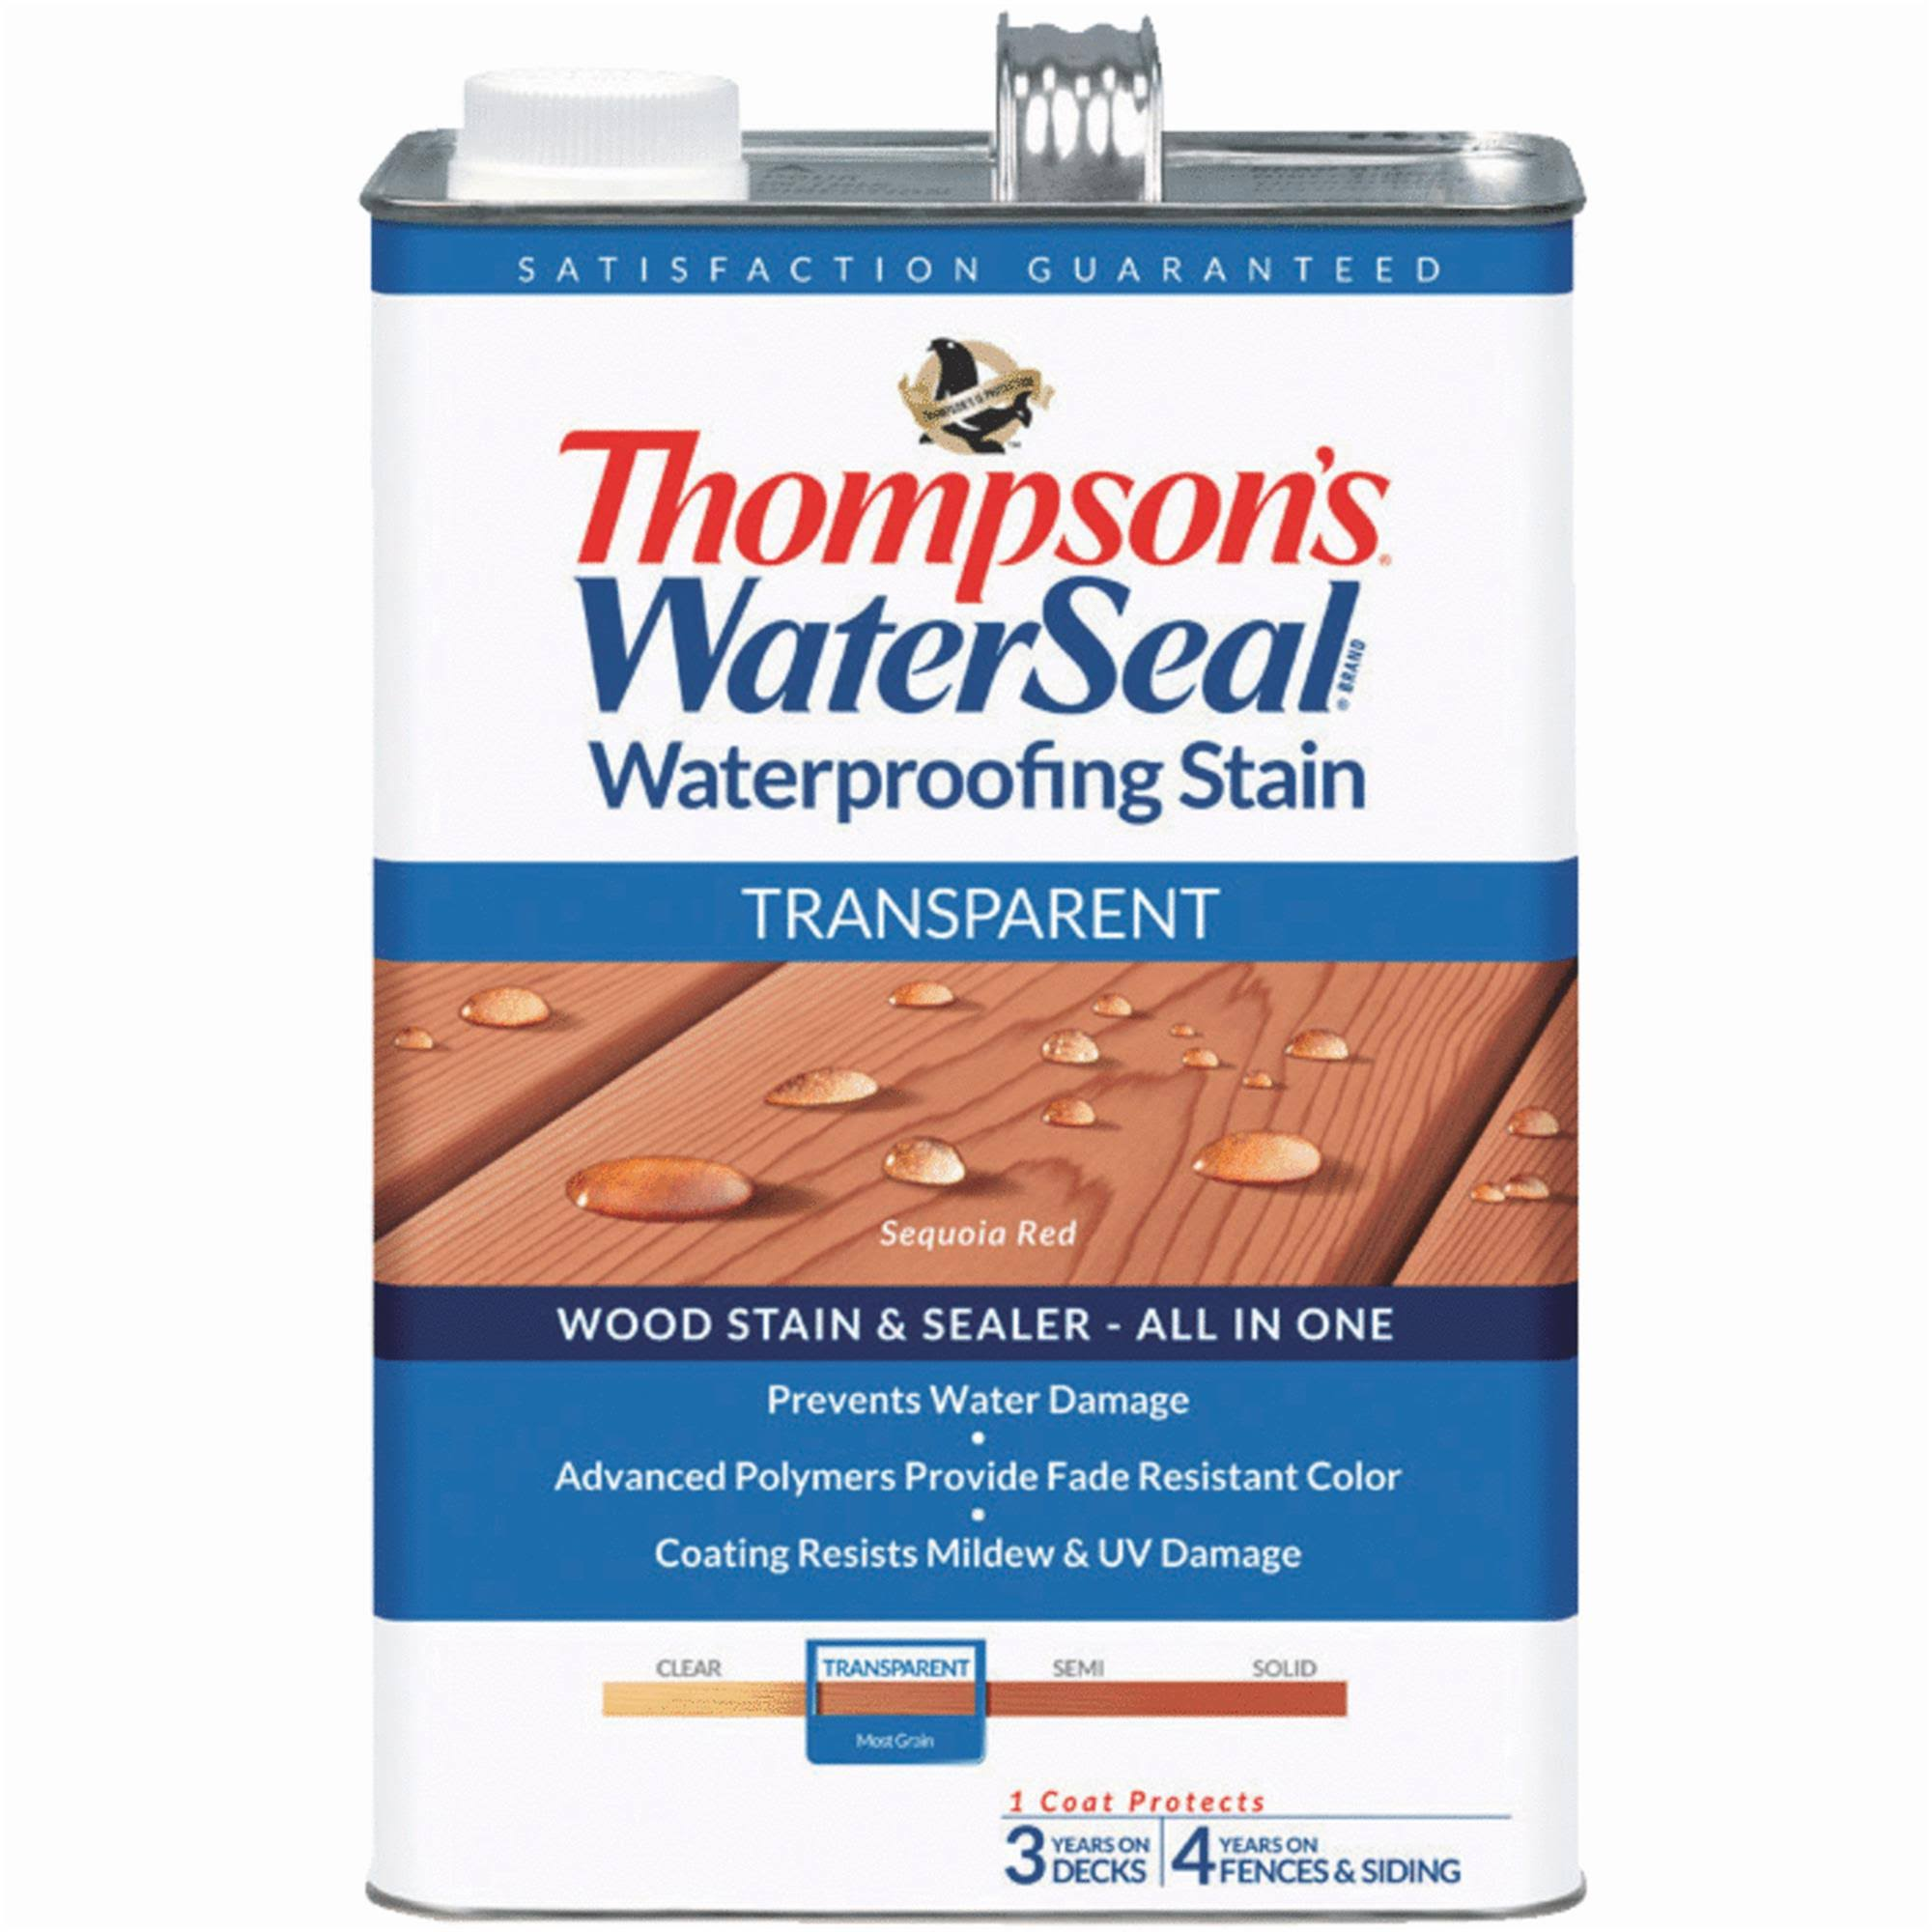 Thompson's Waterseal Waterproofing Stain - Transparent, 1gal